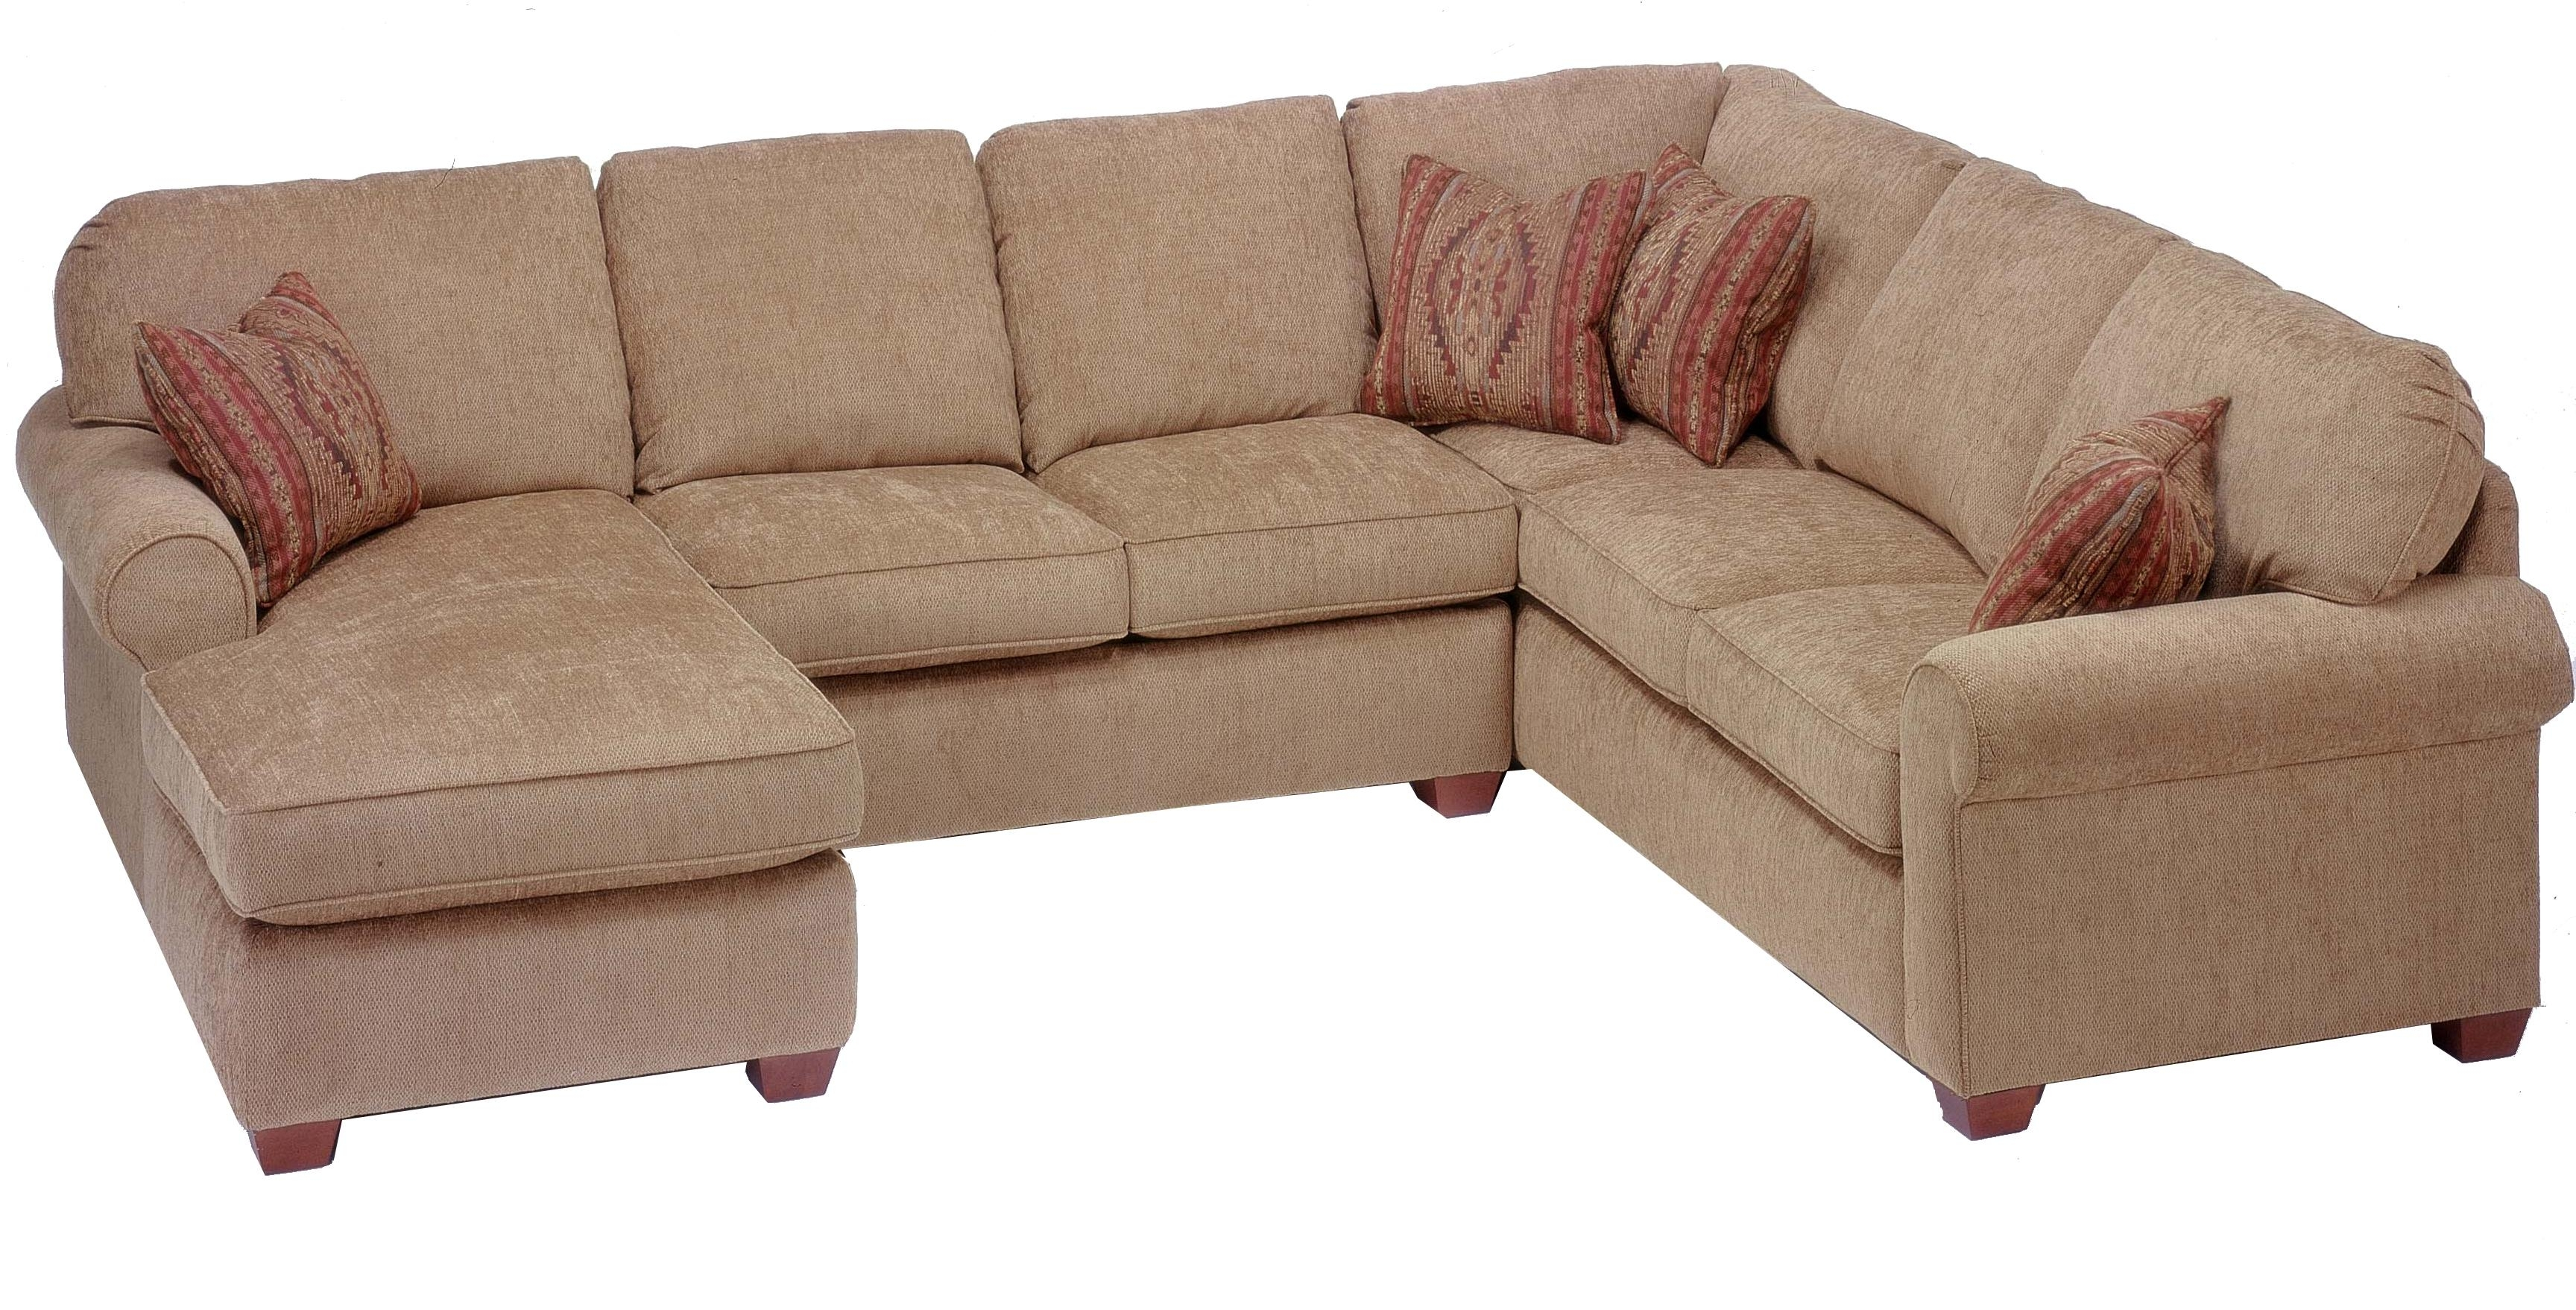 Flexsteel Thornton 3 Piece Sectional With Chaise – Ahfa – Sofa Regarding Meyer 3 Piece Sectionals With Laf Chaise (View 9 of 25)